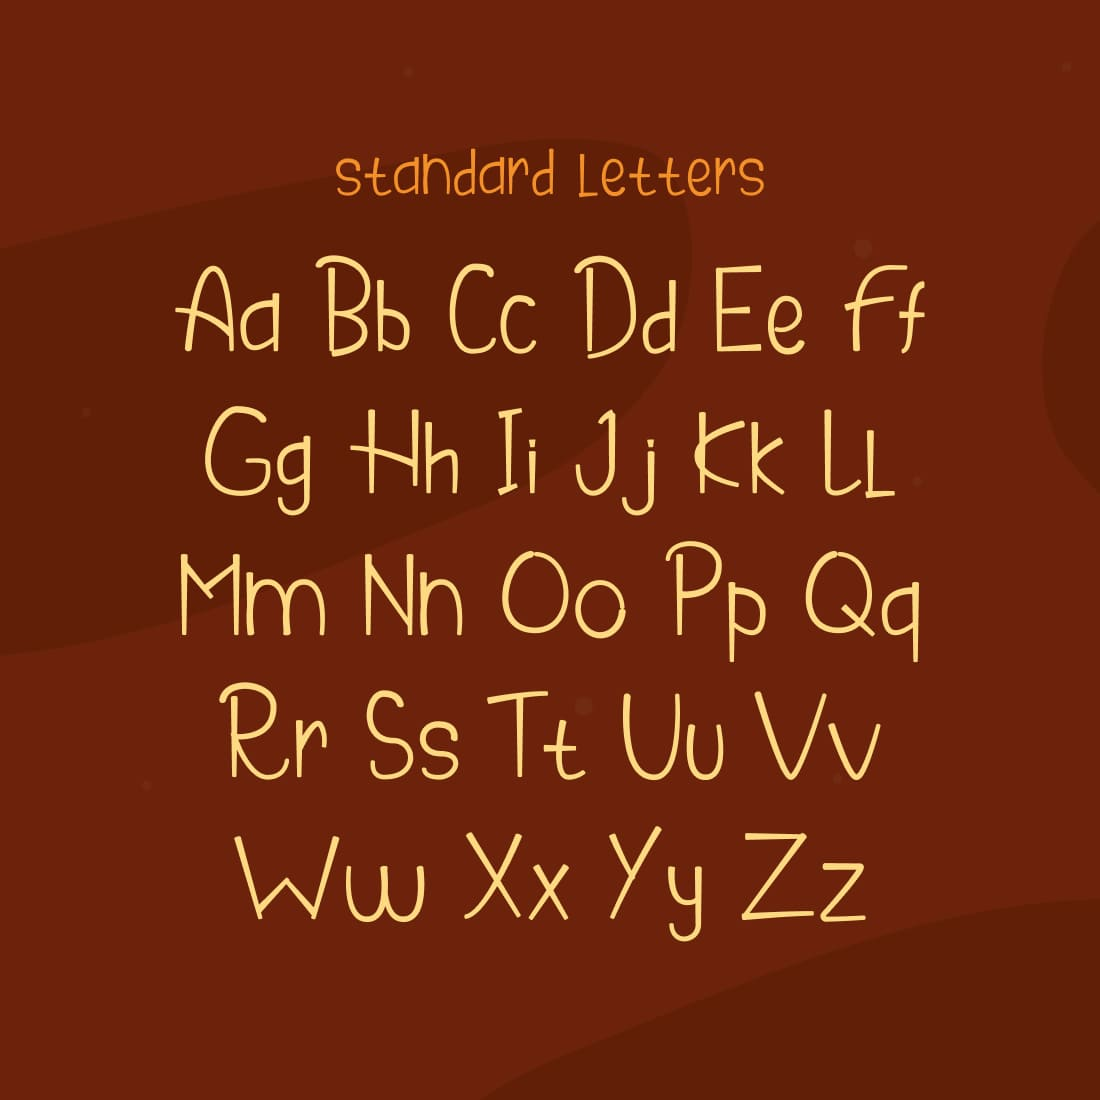 MasterBundles Thanksgiving Cooker Free Font Cover with Alphabet.